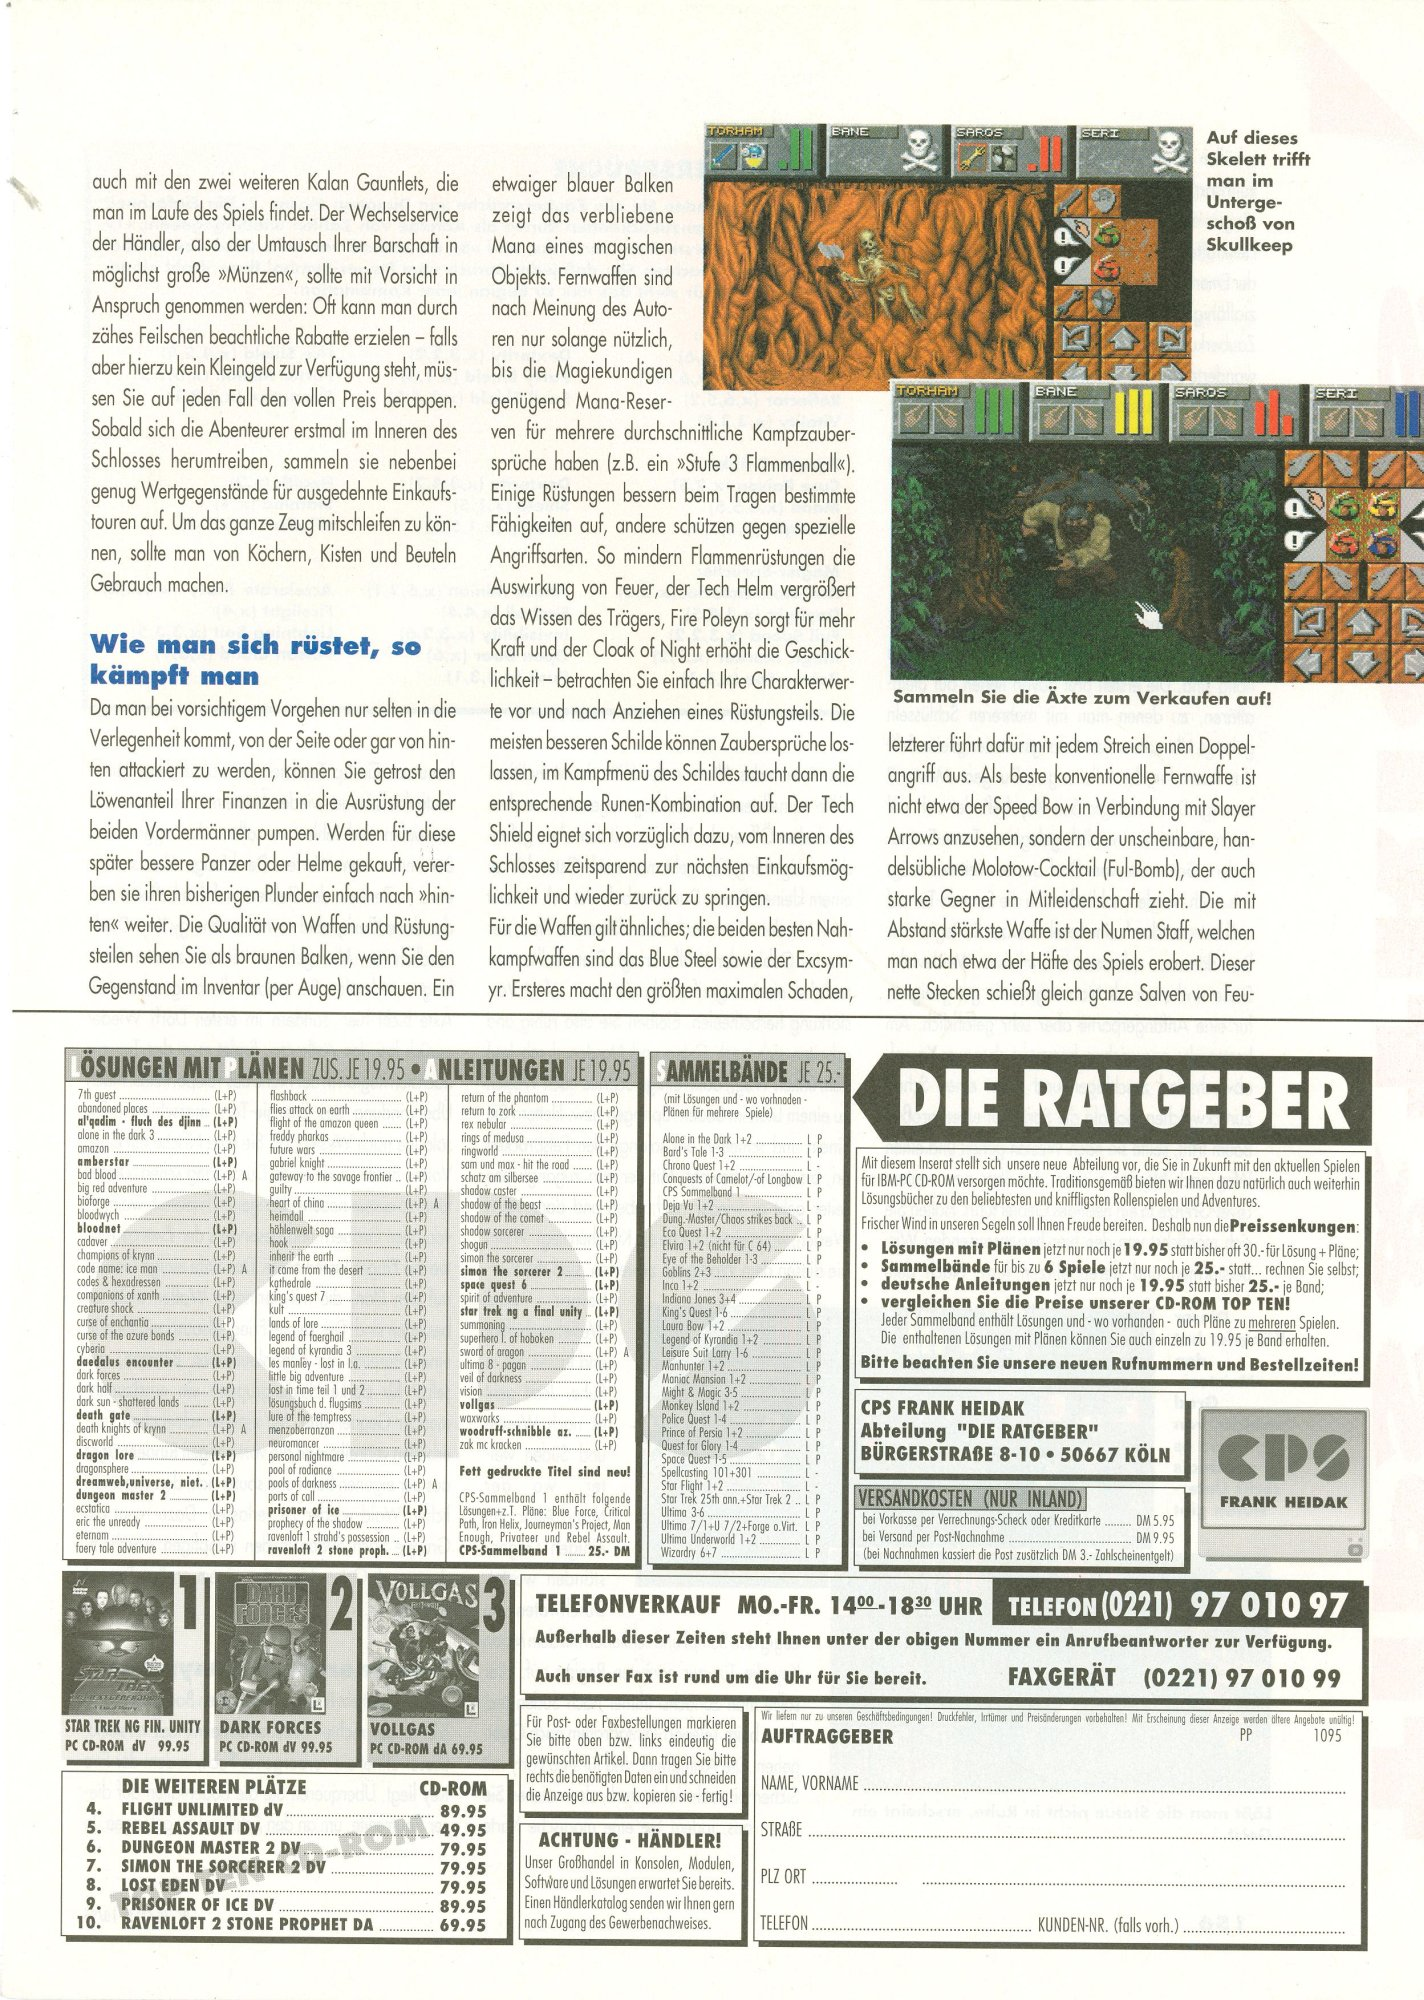 Dungeon Master II for PC Guide published in German magazine 'PC Player', October 1995, Page 155